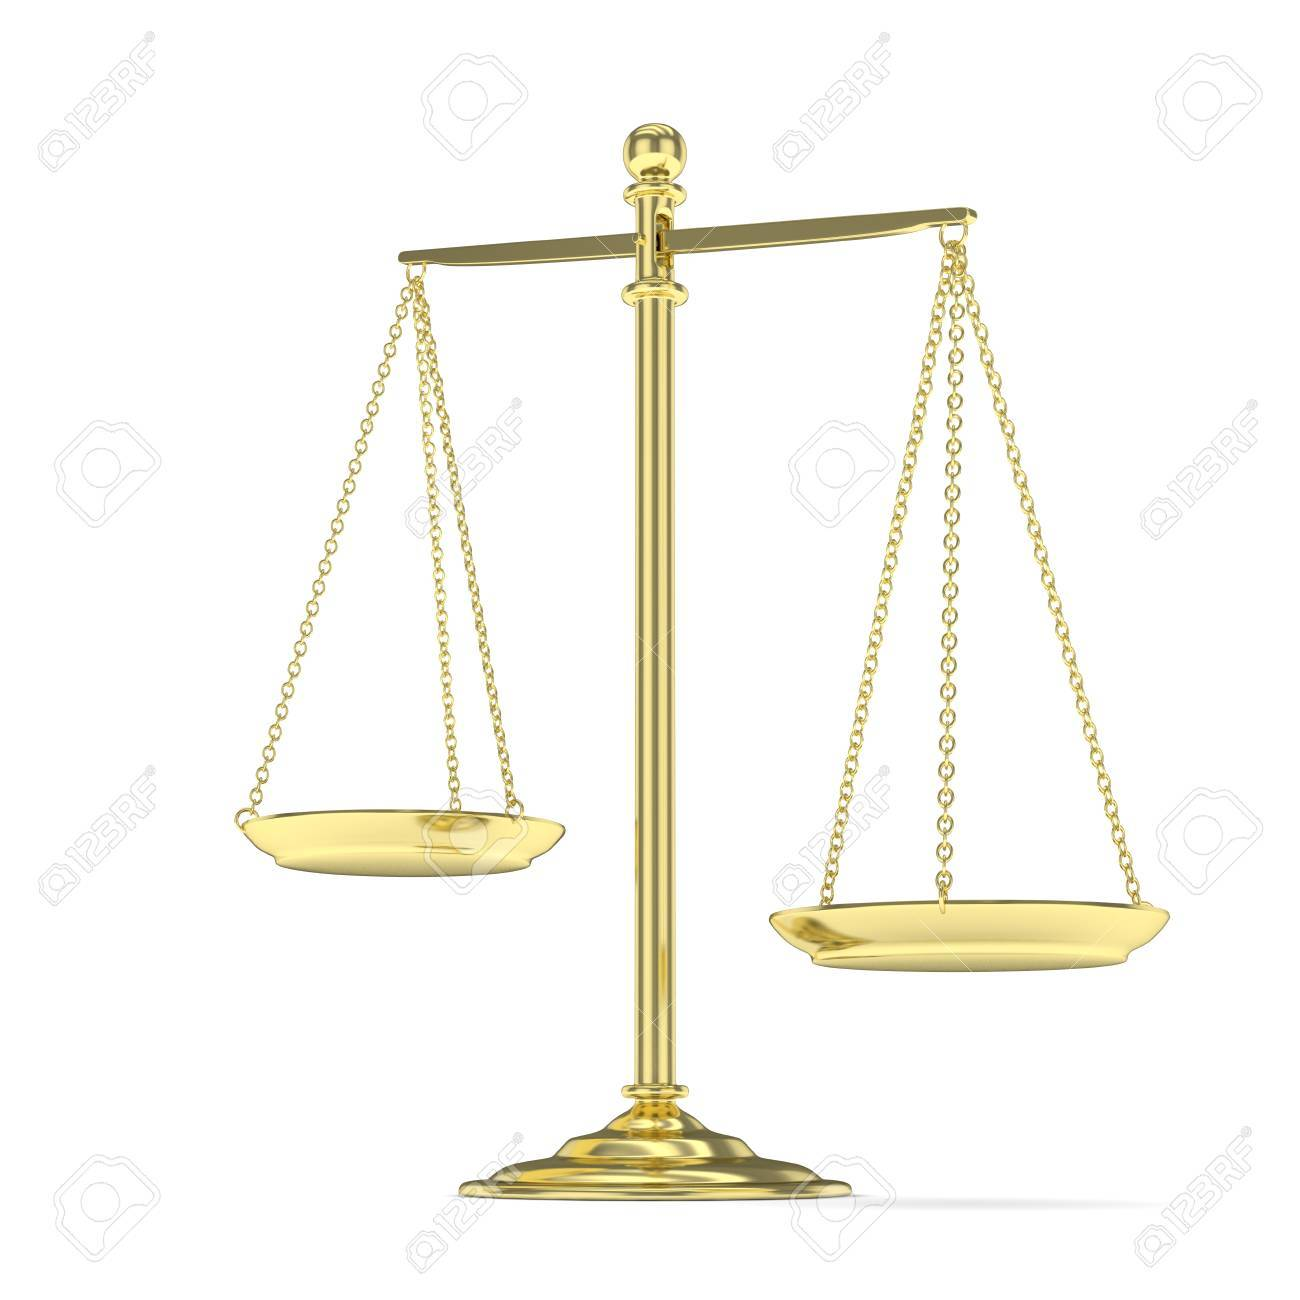 Isolated Golden Scales On White Background Symbol Of Judgement